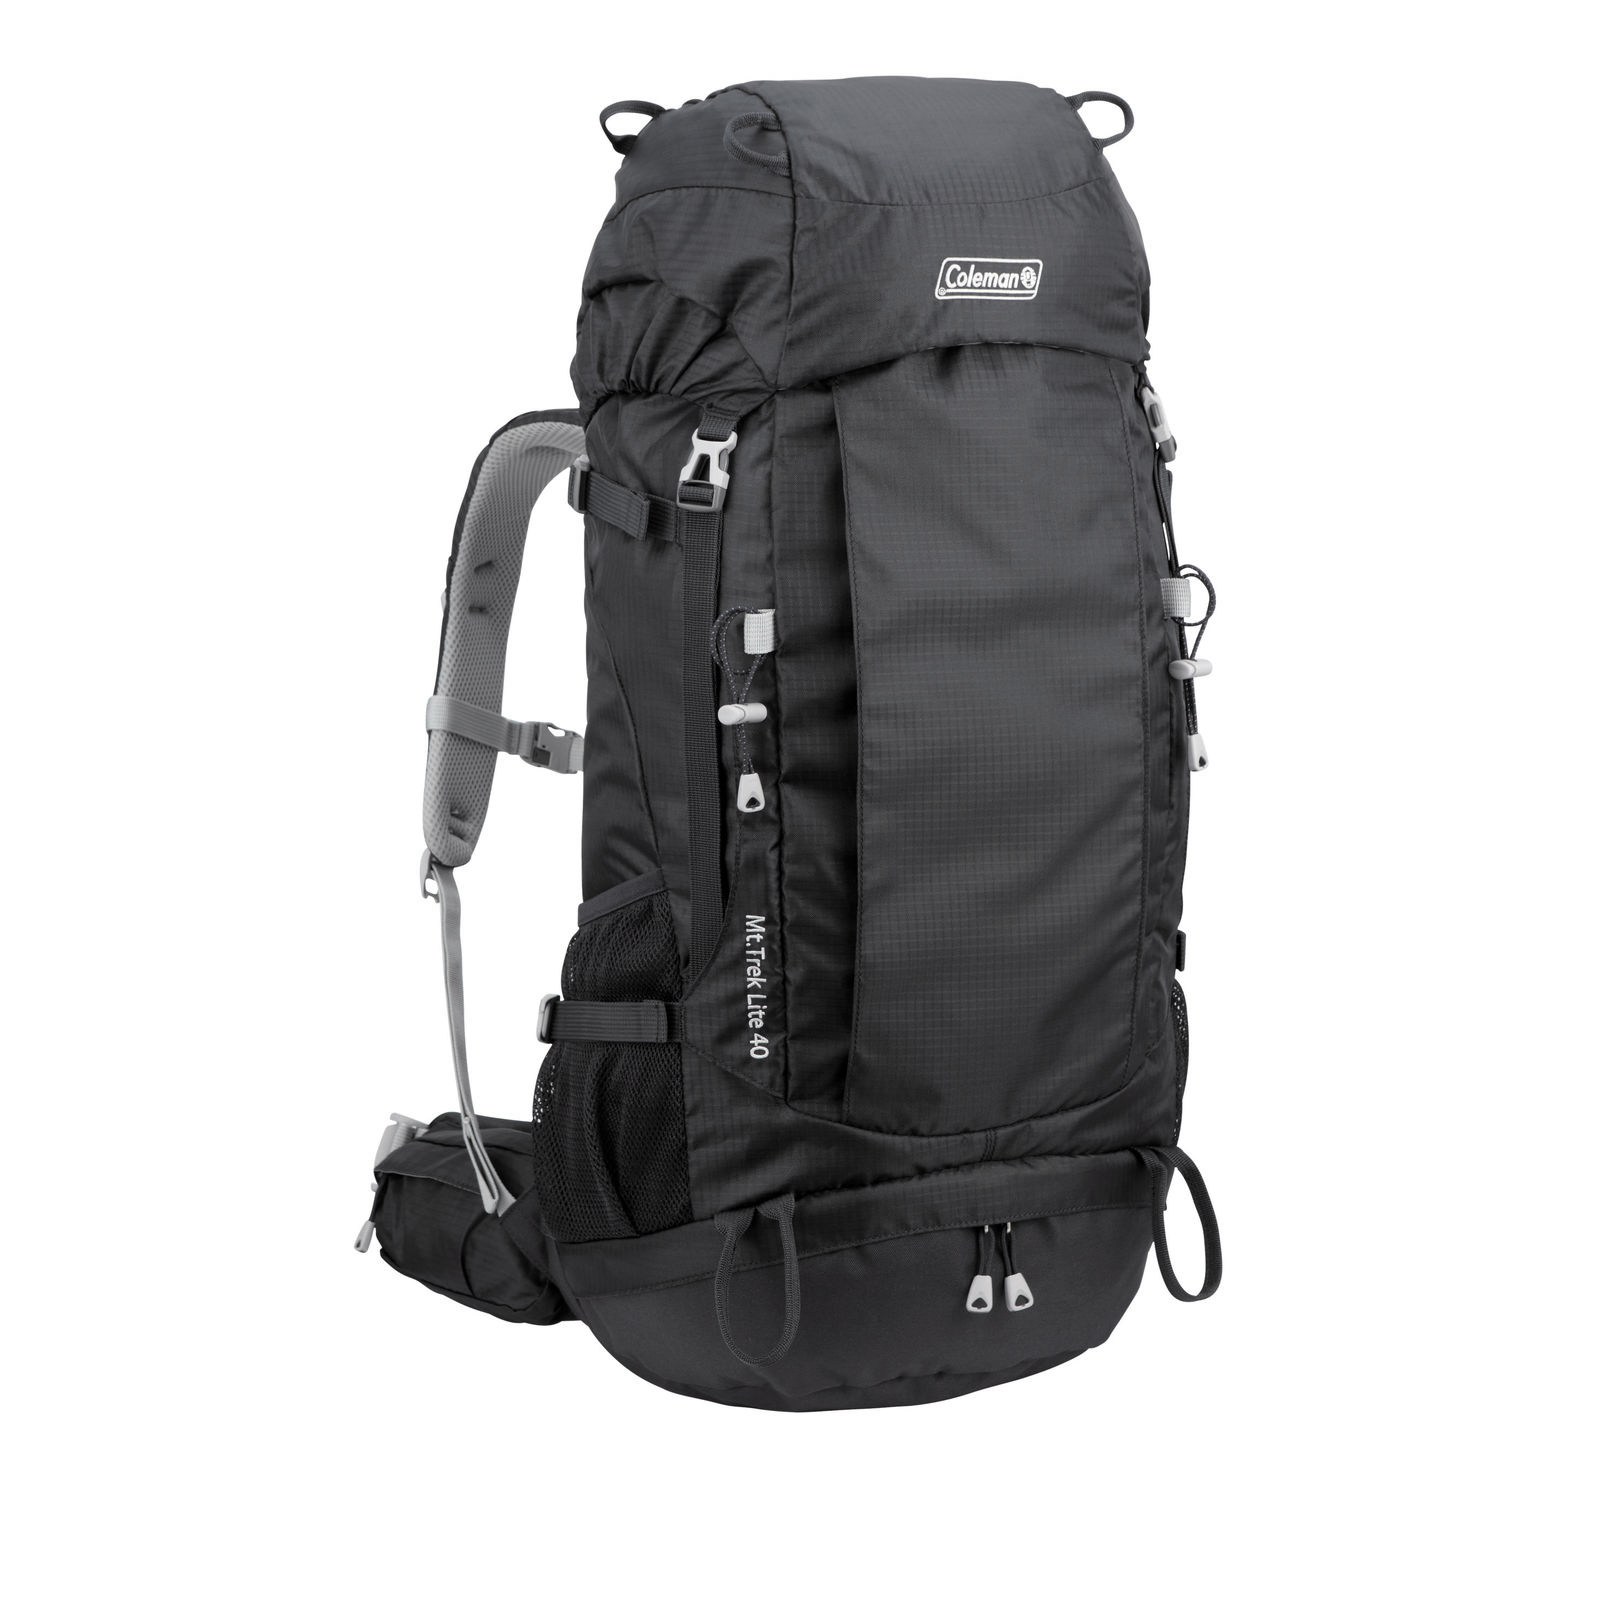 59edeaddad0e Coleman Mt Trek Lite Backpack - 40L - Black - Tentworld